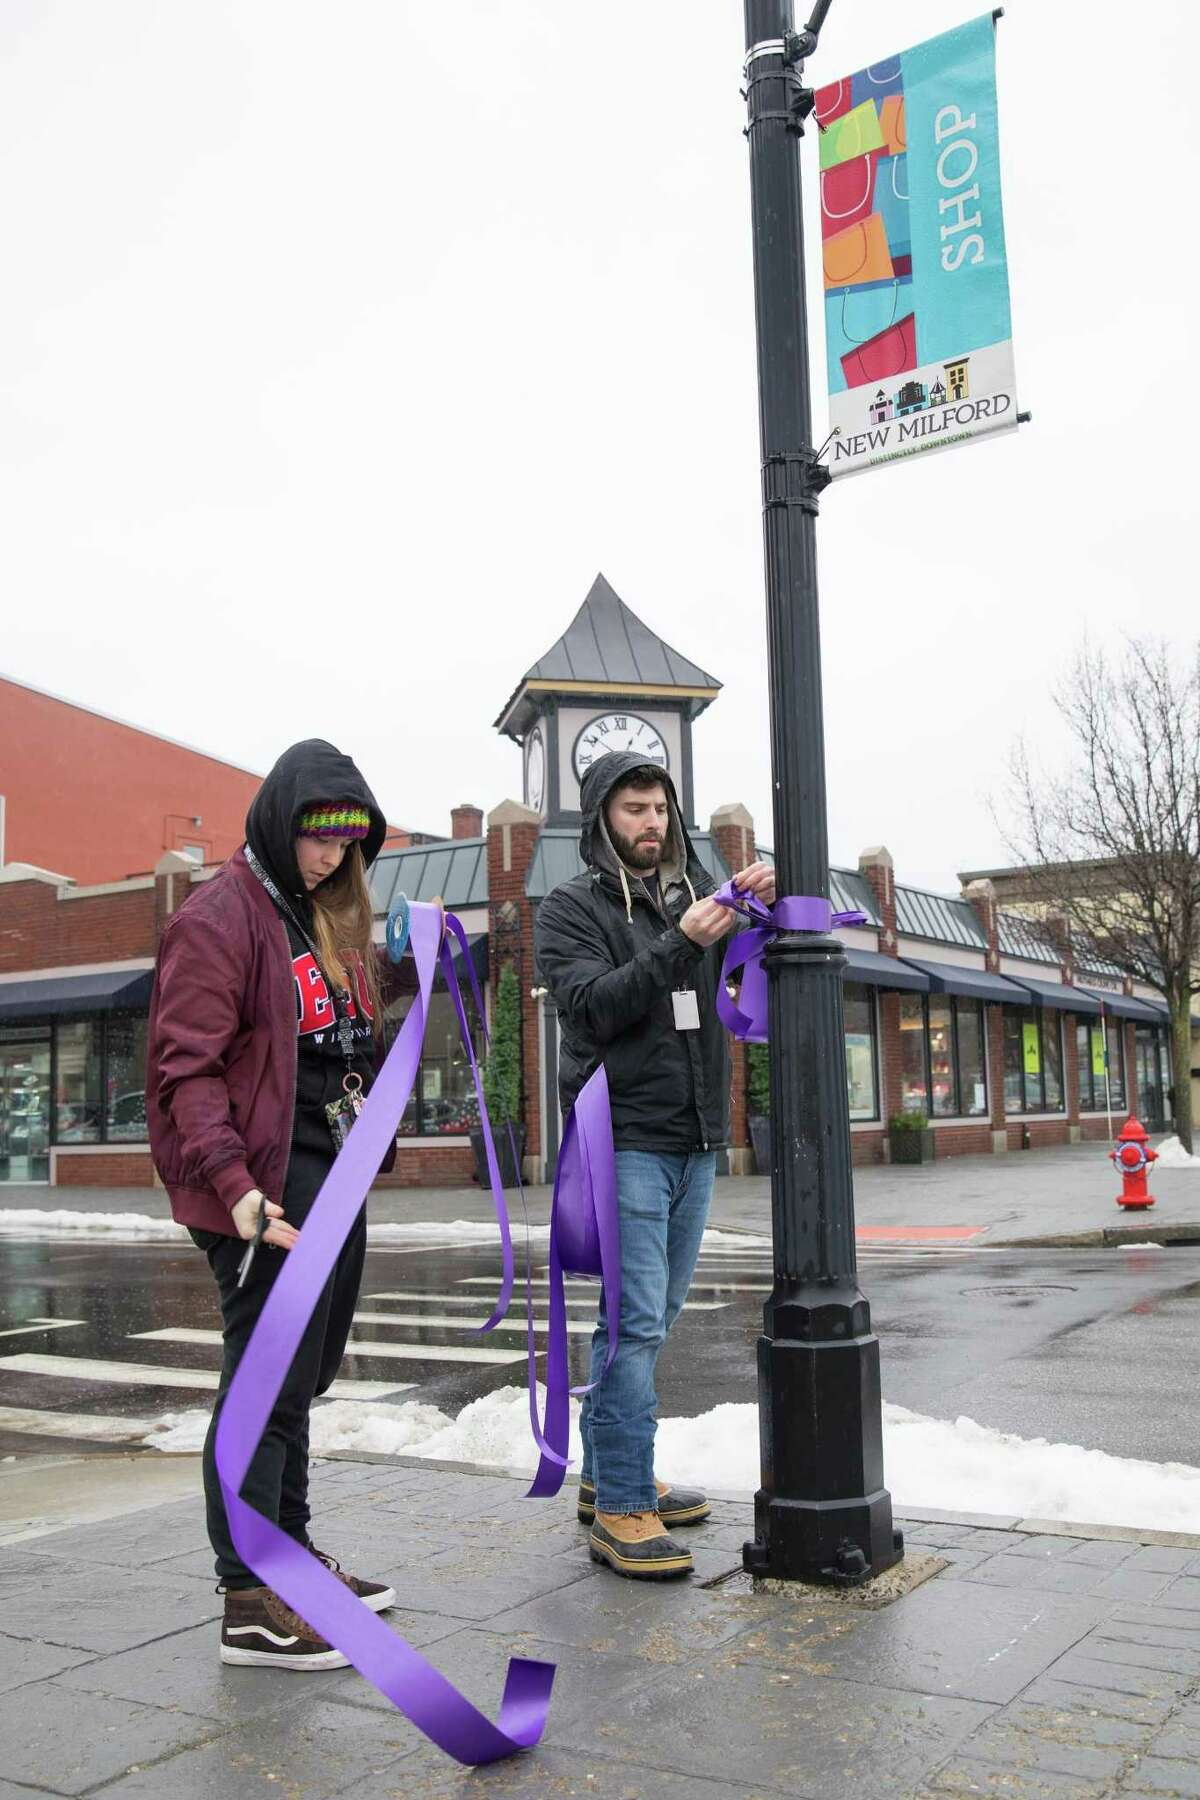 Above, Reginarose Ryan, age 15, and Tori DeJulia, age 16, both from S.A.D.D. (Students Against Destructive Decisions) participated in The Project Purple group (with the Housatonic Valley Coalition Against Substance Abuse) by decorating the Village Green with purple ribbons to raise awareness. Right, Carly Brill, age 17, S.A.D.D. President and Jason O'Connor, a Youth Advocate from the New Milford Youth Agency, particpating in the event.